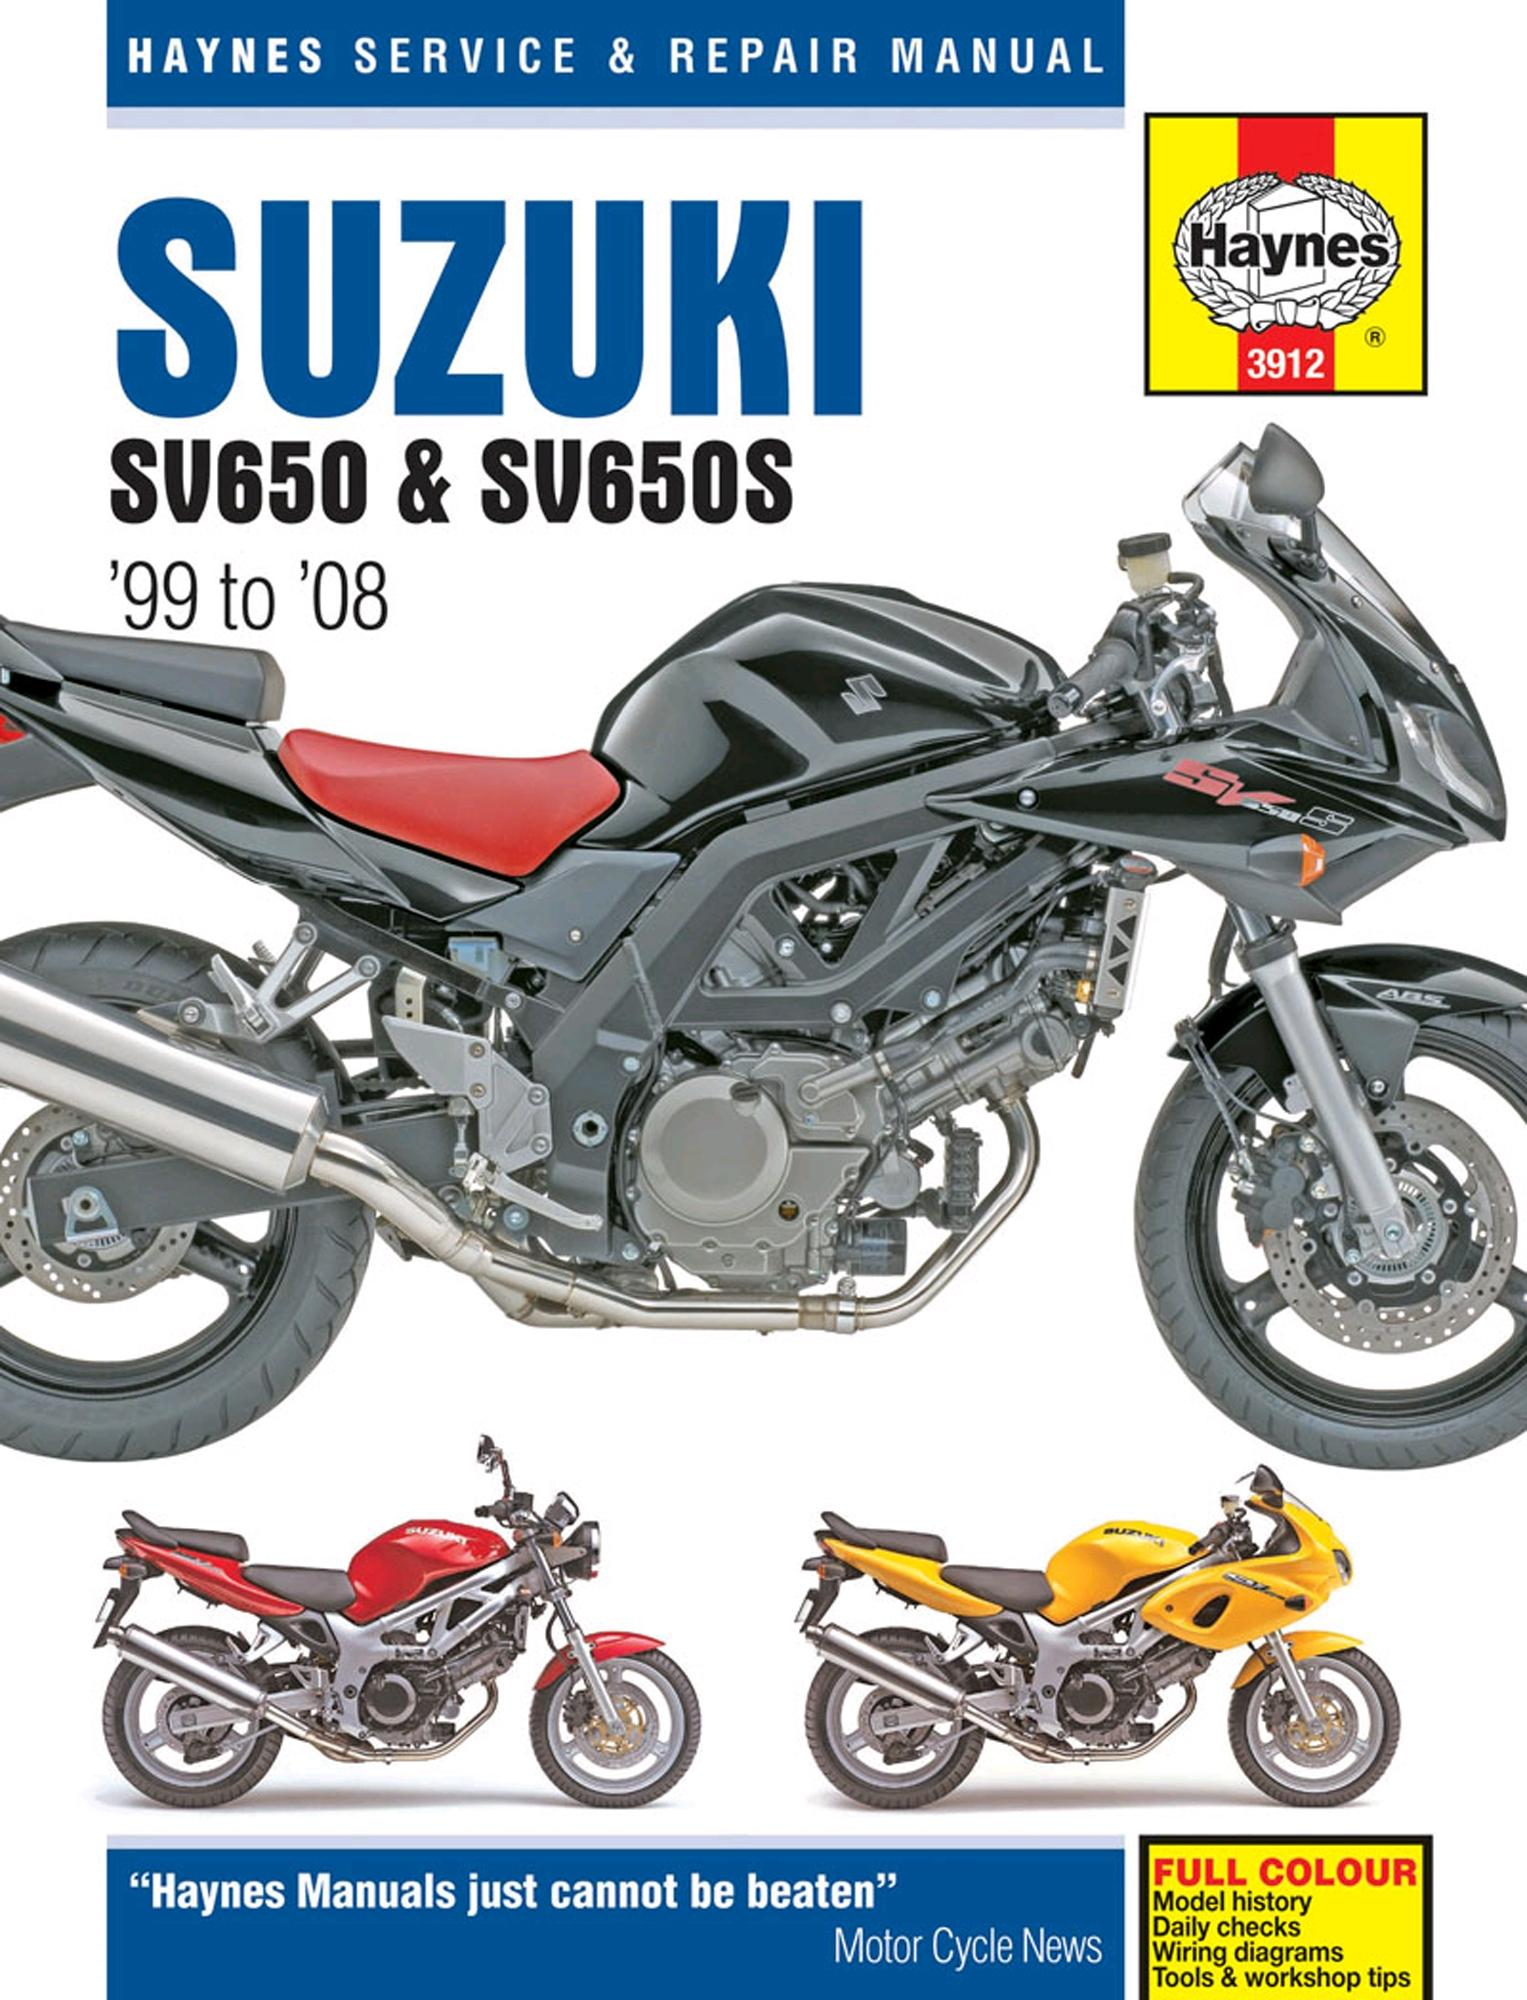 haynes service repair manual suzuki sv650 sv650s 99 08 motorcycle rh ebay co uk suzuki sv 650 service manual pdf sv650 service manual 2017